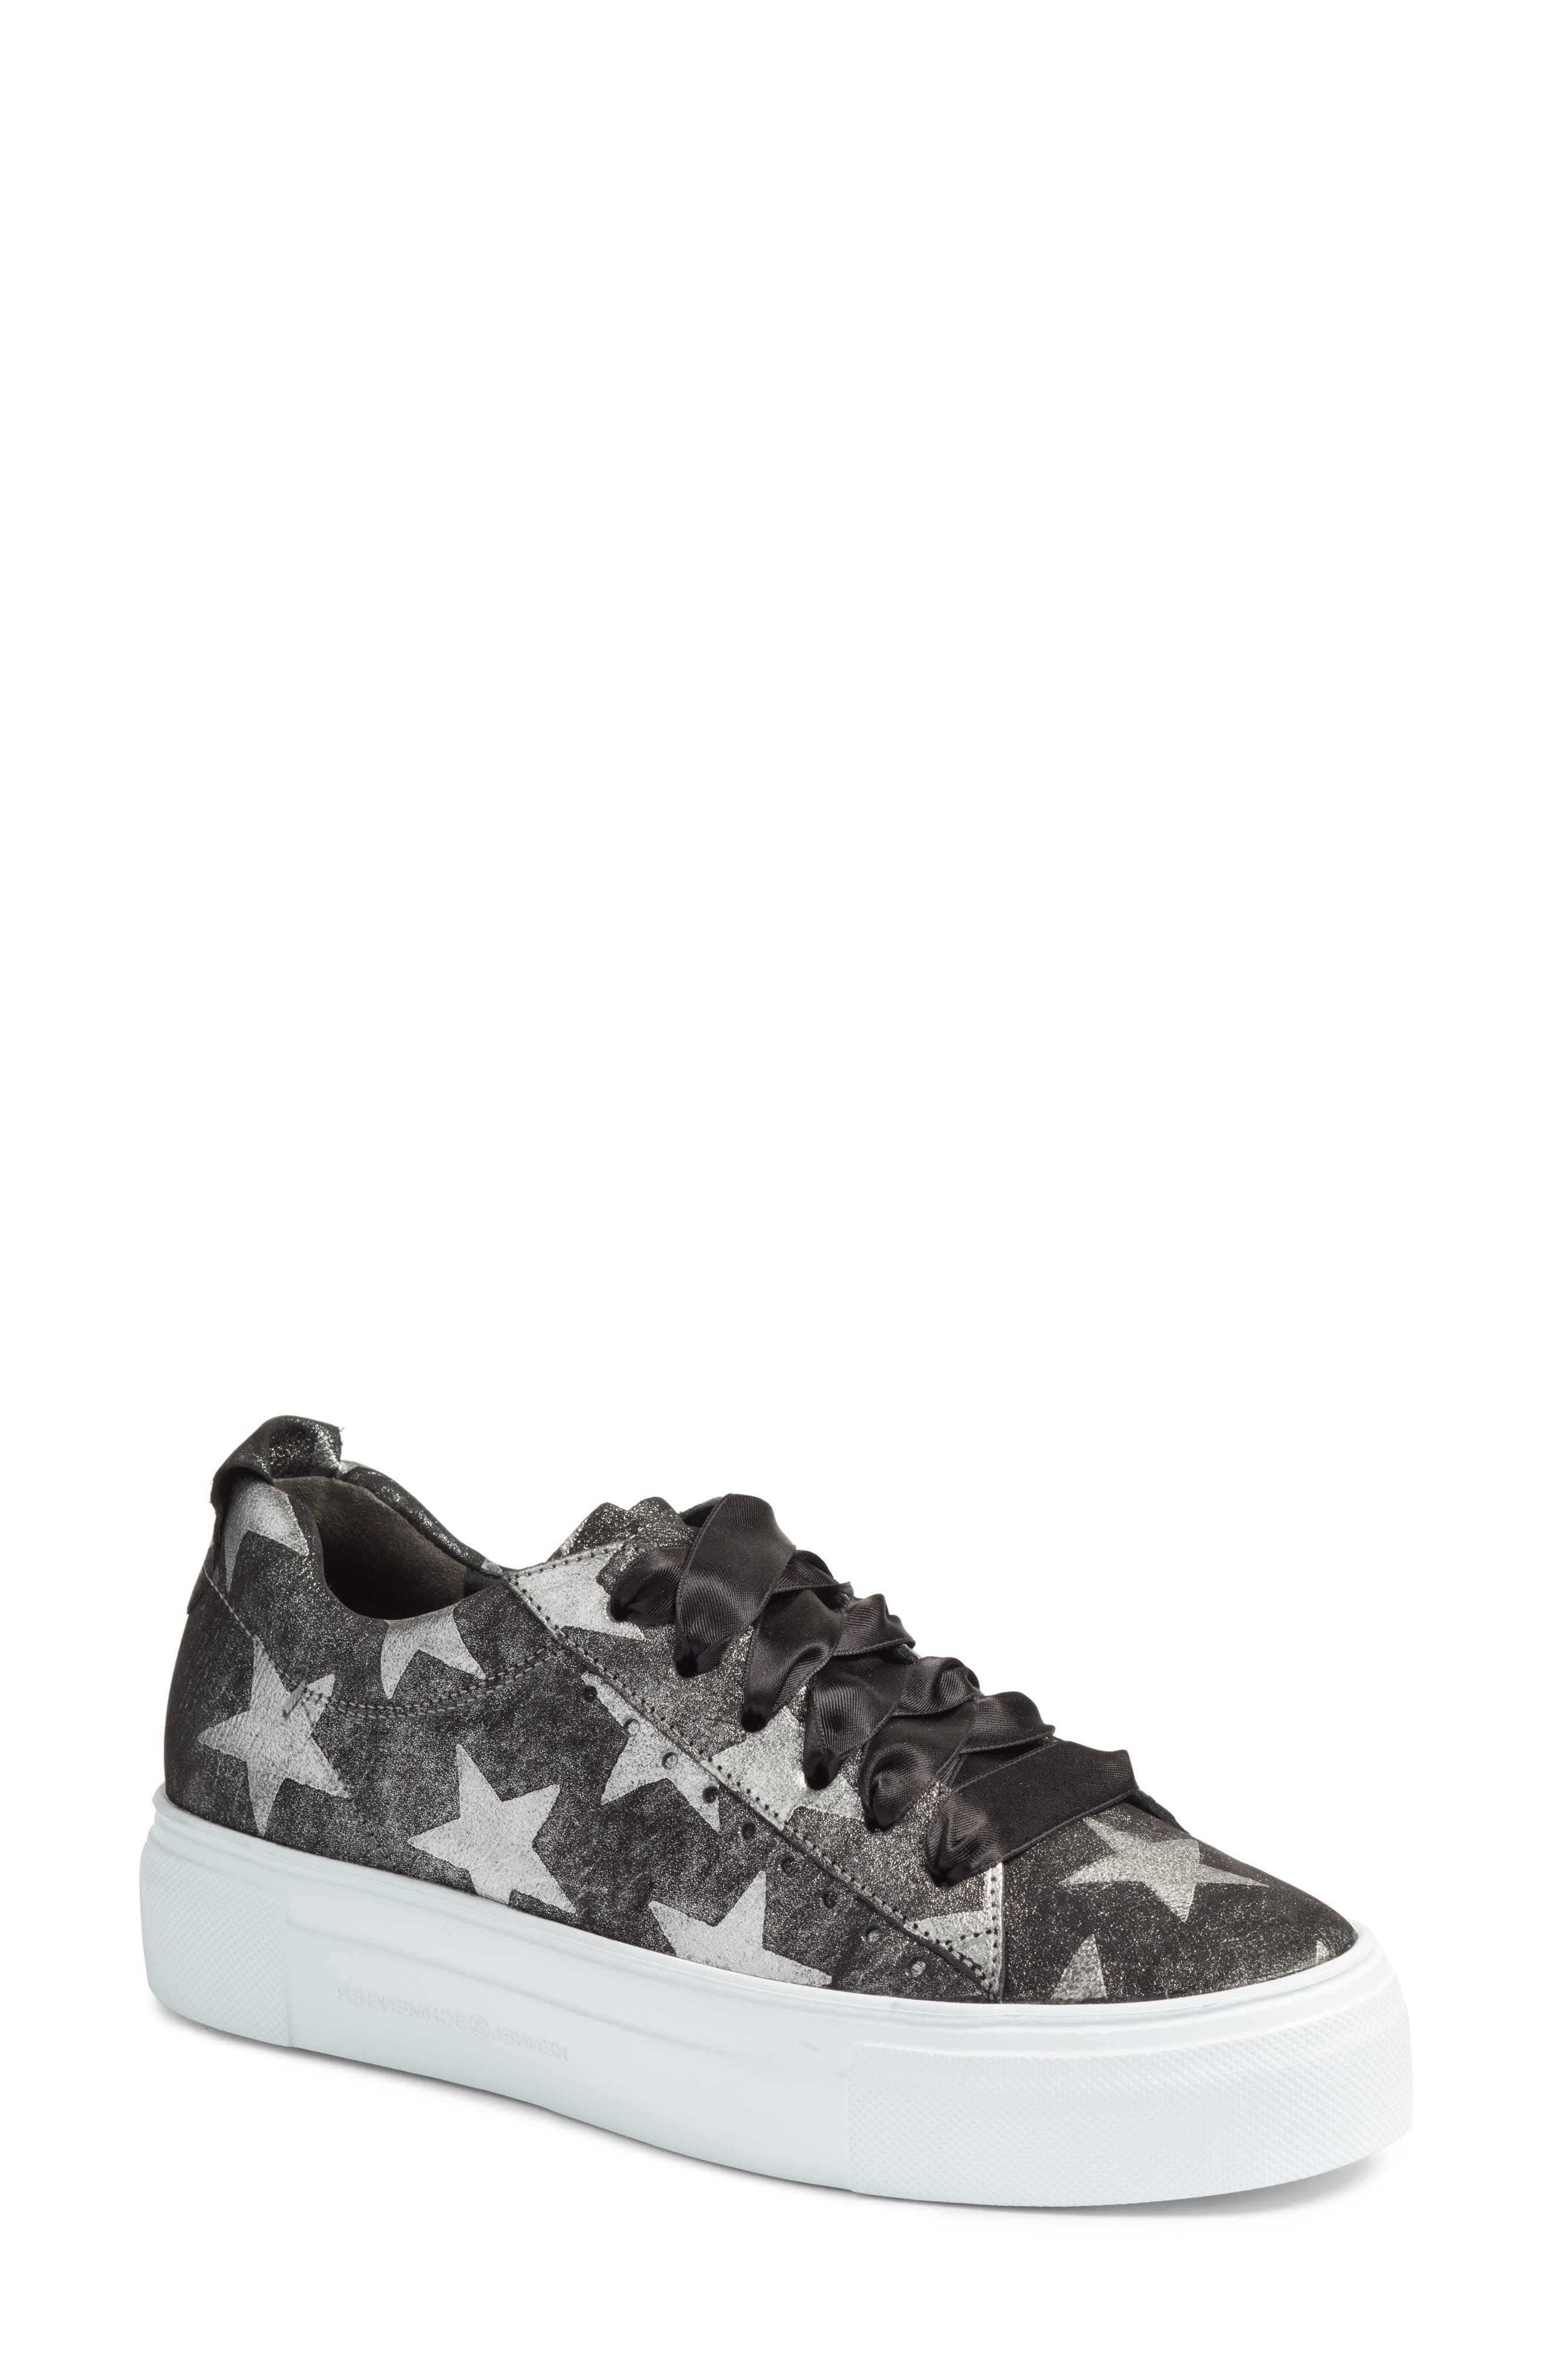 Main Image - Kennel & Schmenger Big Star Sneaker (Women)